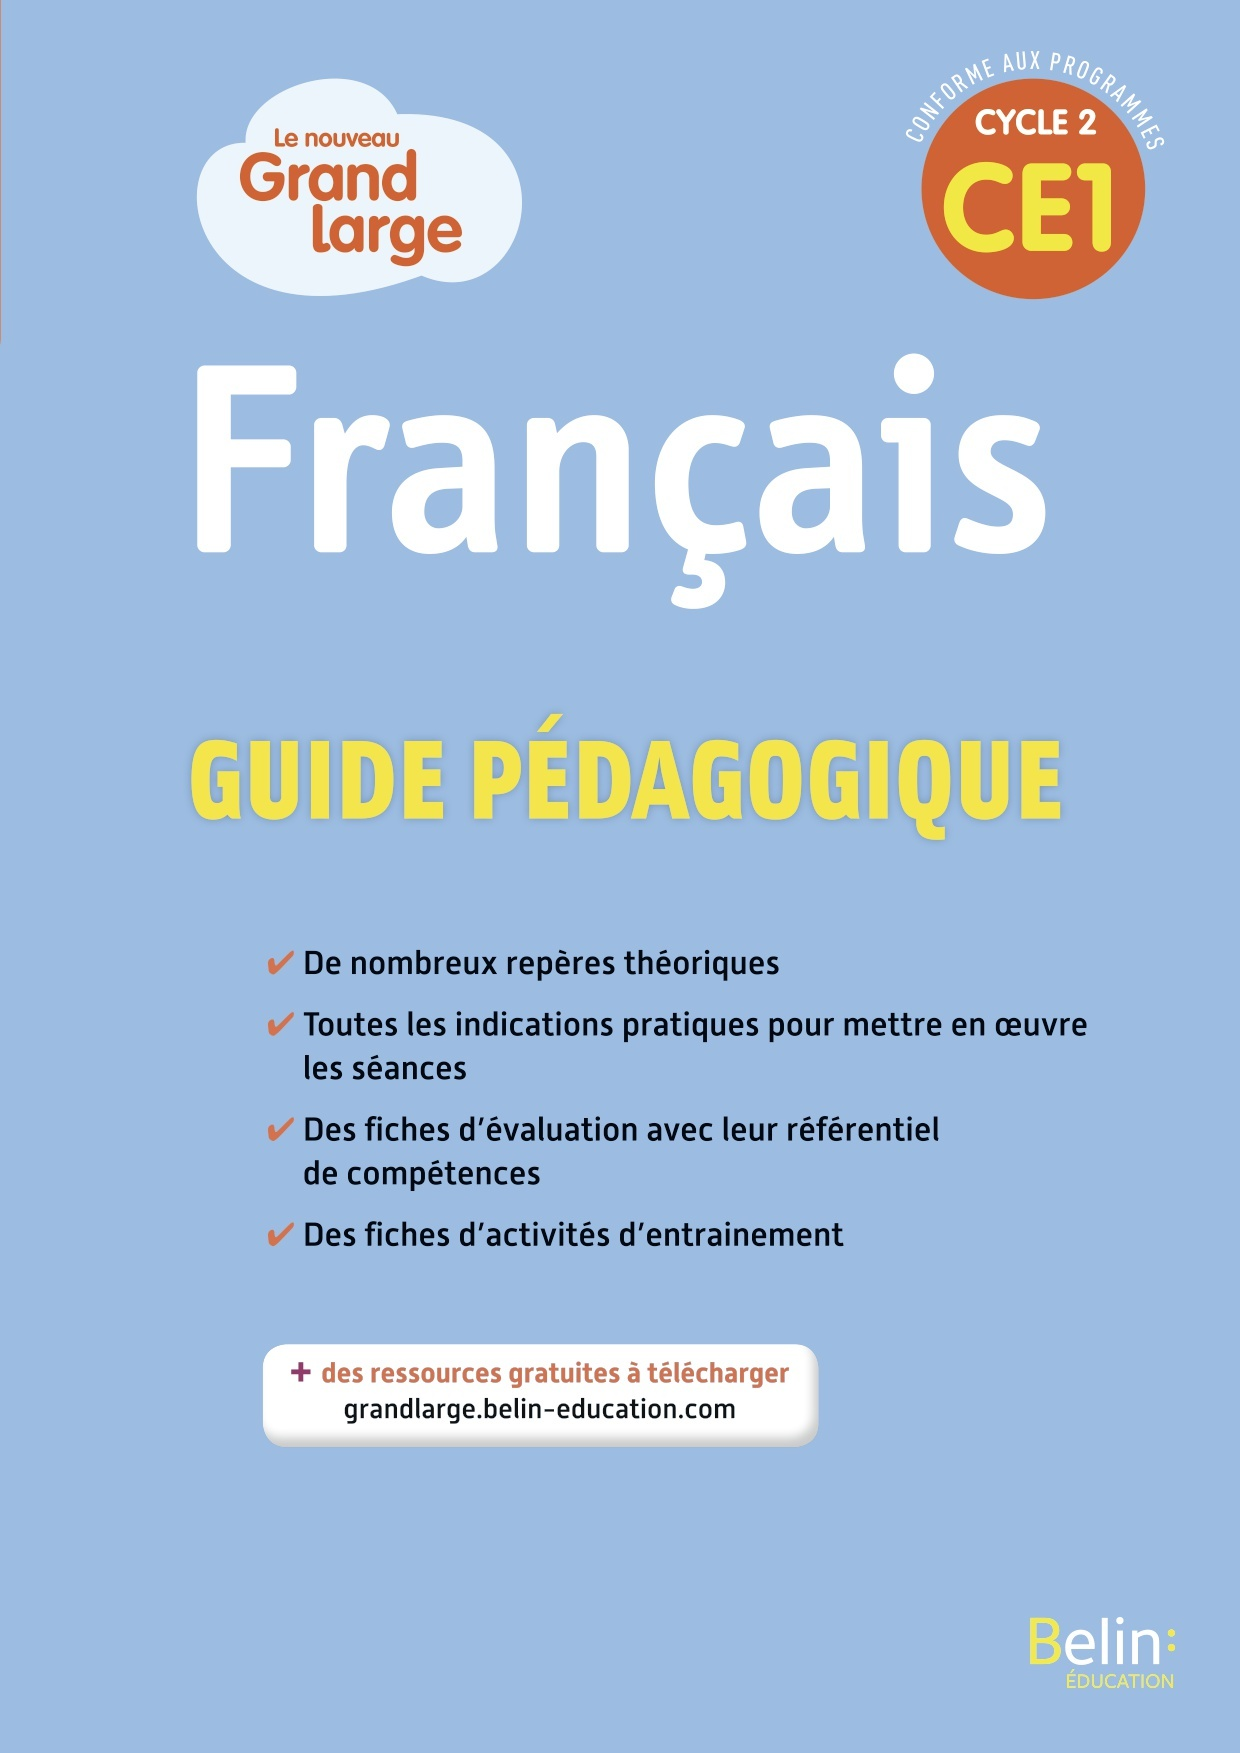 GRAND LARGE CE1 2019, GUIDE PEDAGOGIQUE